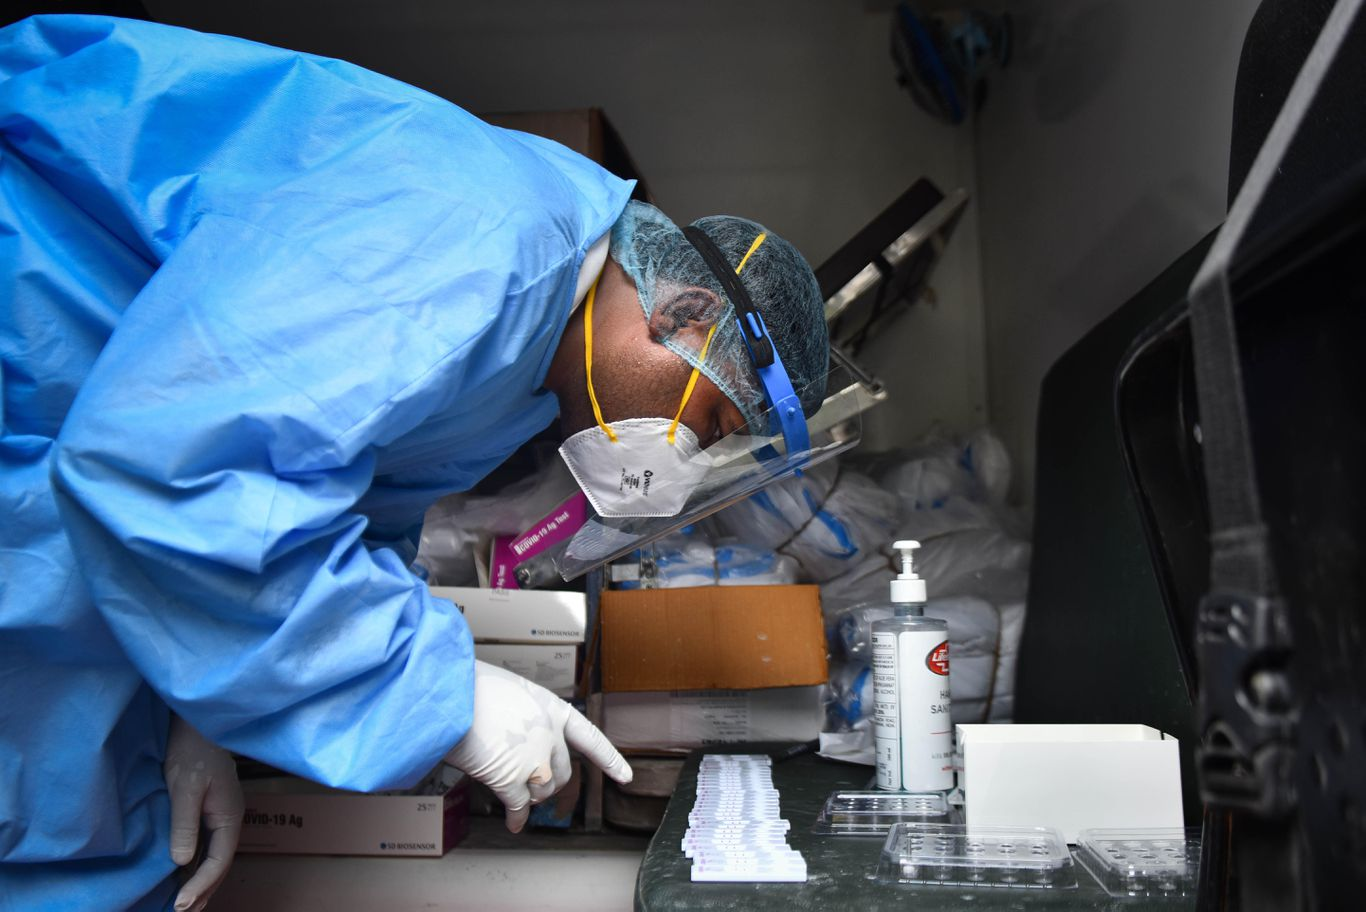 WHO: Health care workers account for around 14% of coronavirus cases thumbnail